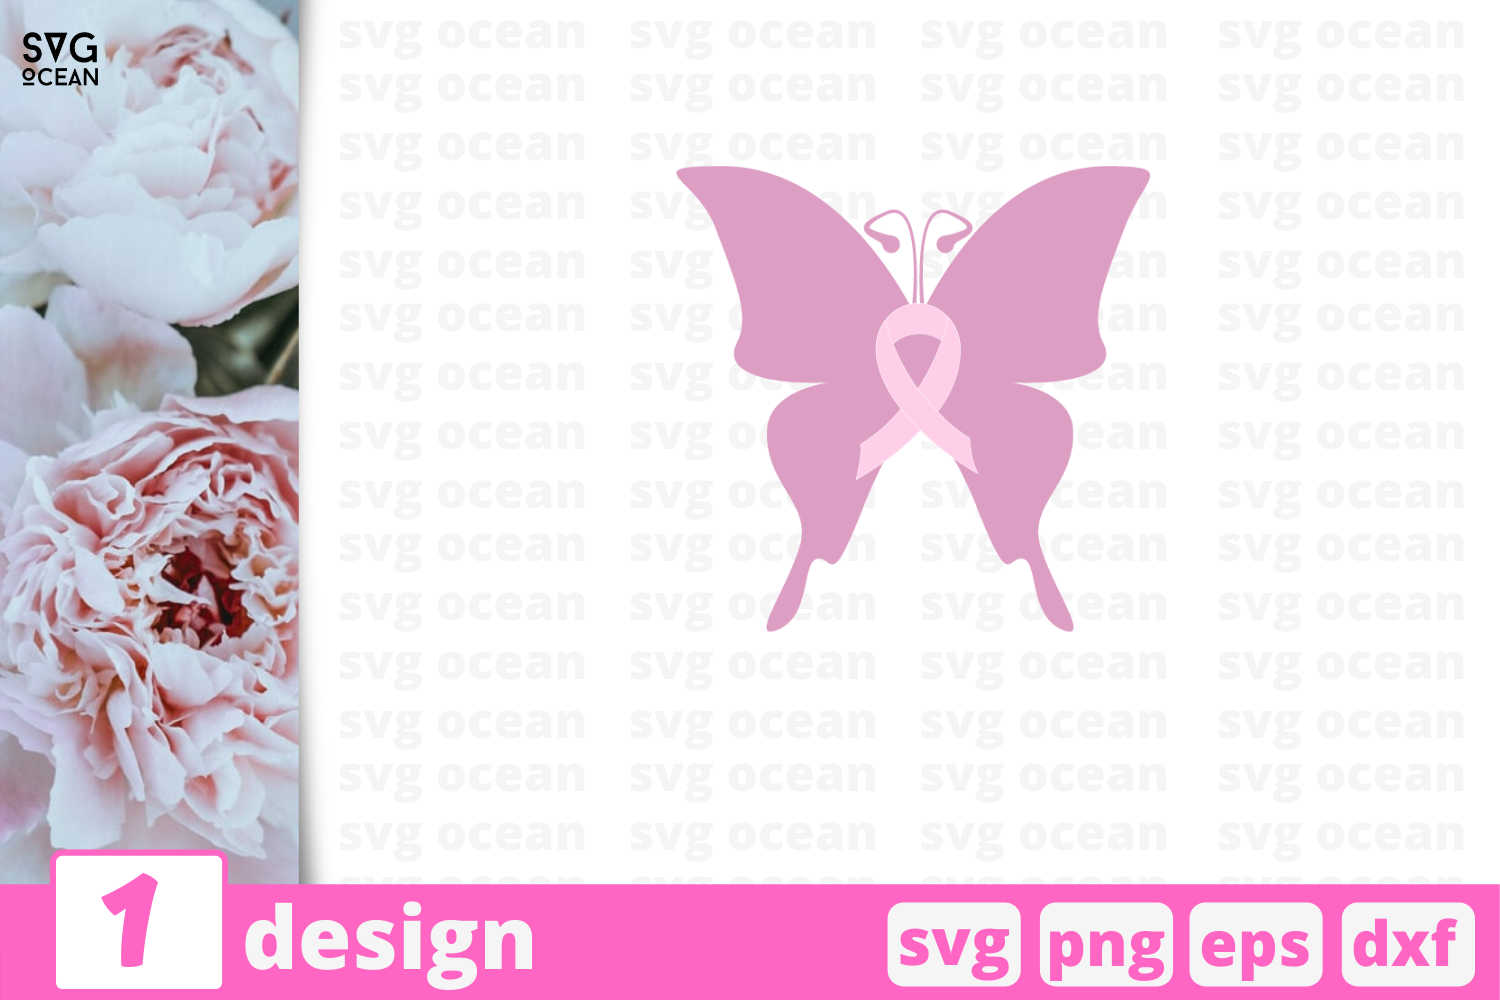 Download Free Butterfly Graphic By Svgocean Creative Fabrica for Cricut Explore, Silhouette and other cutting machines.